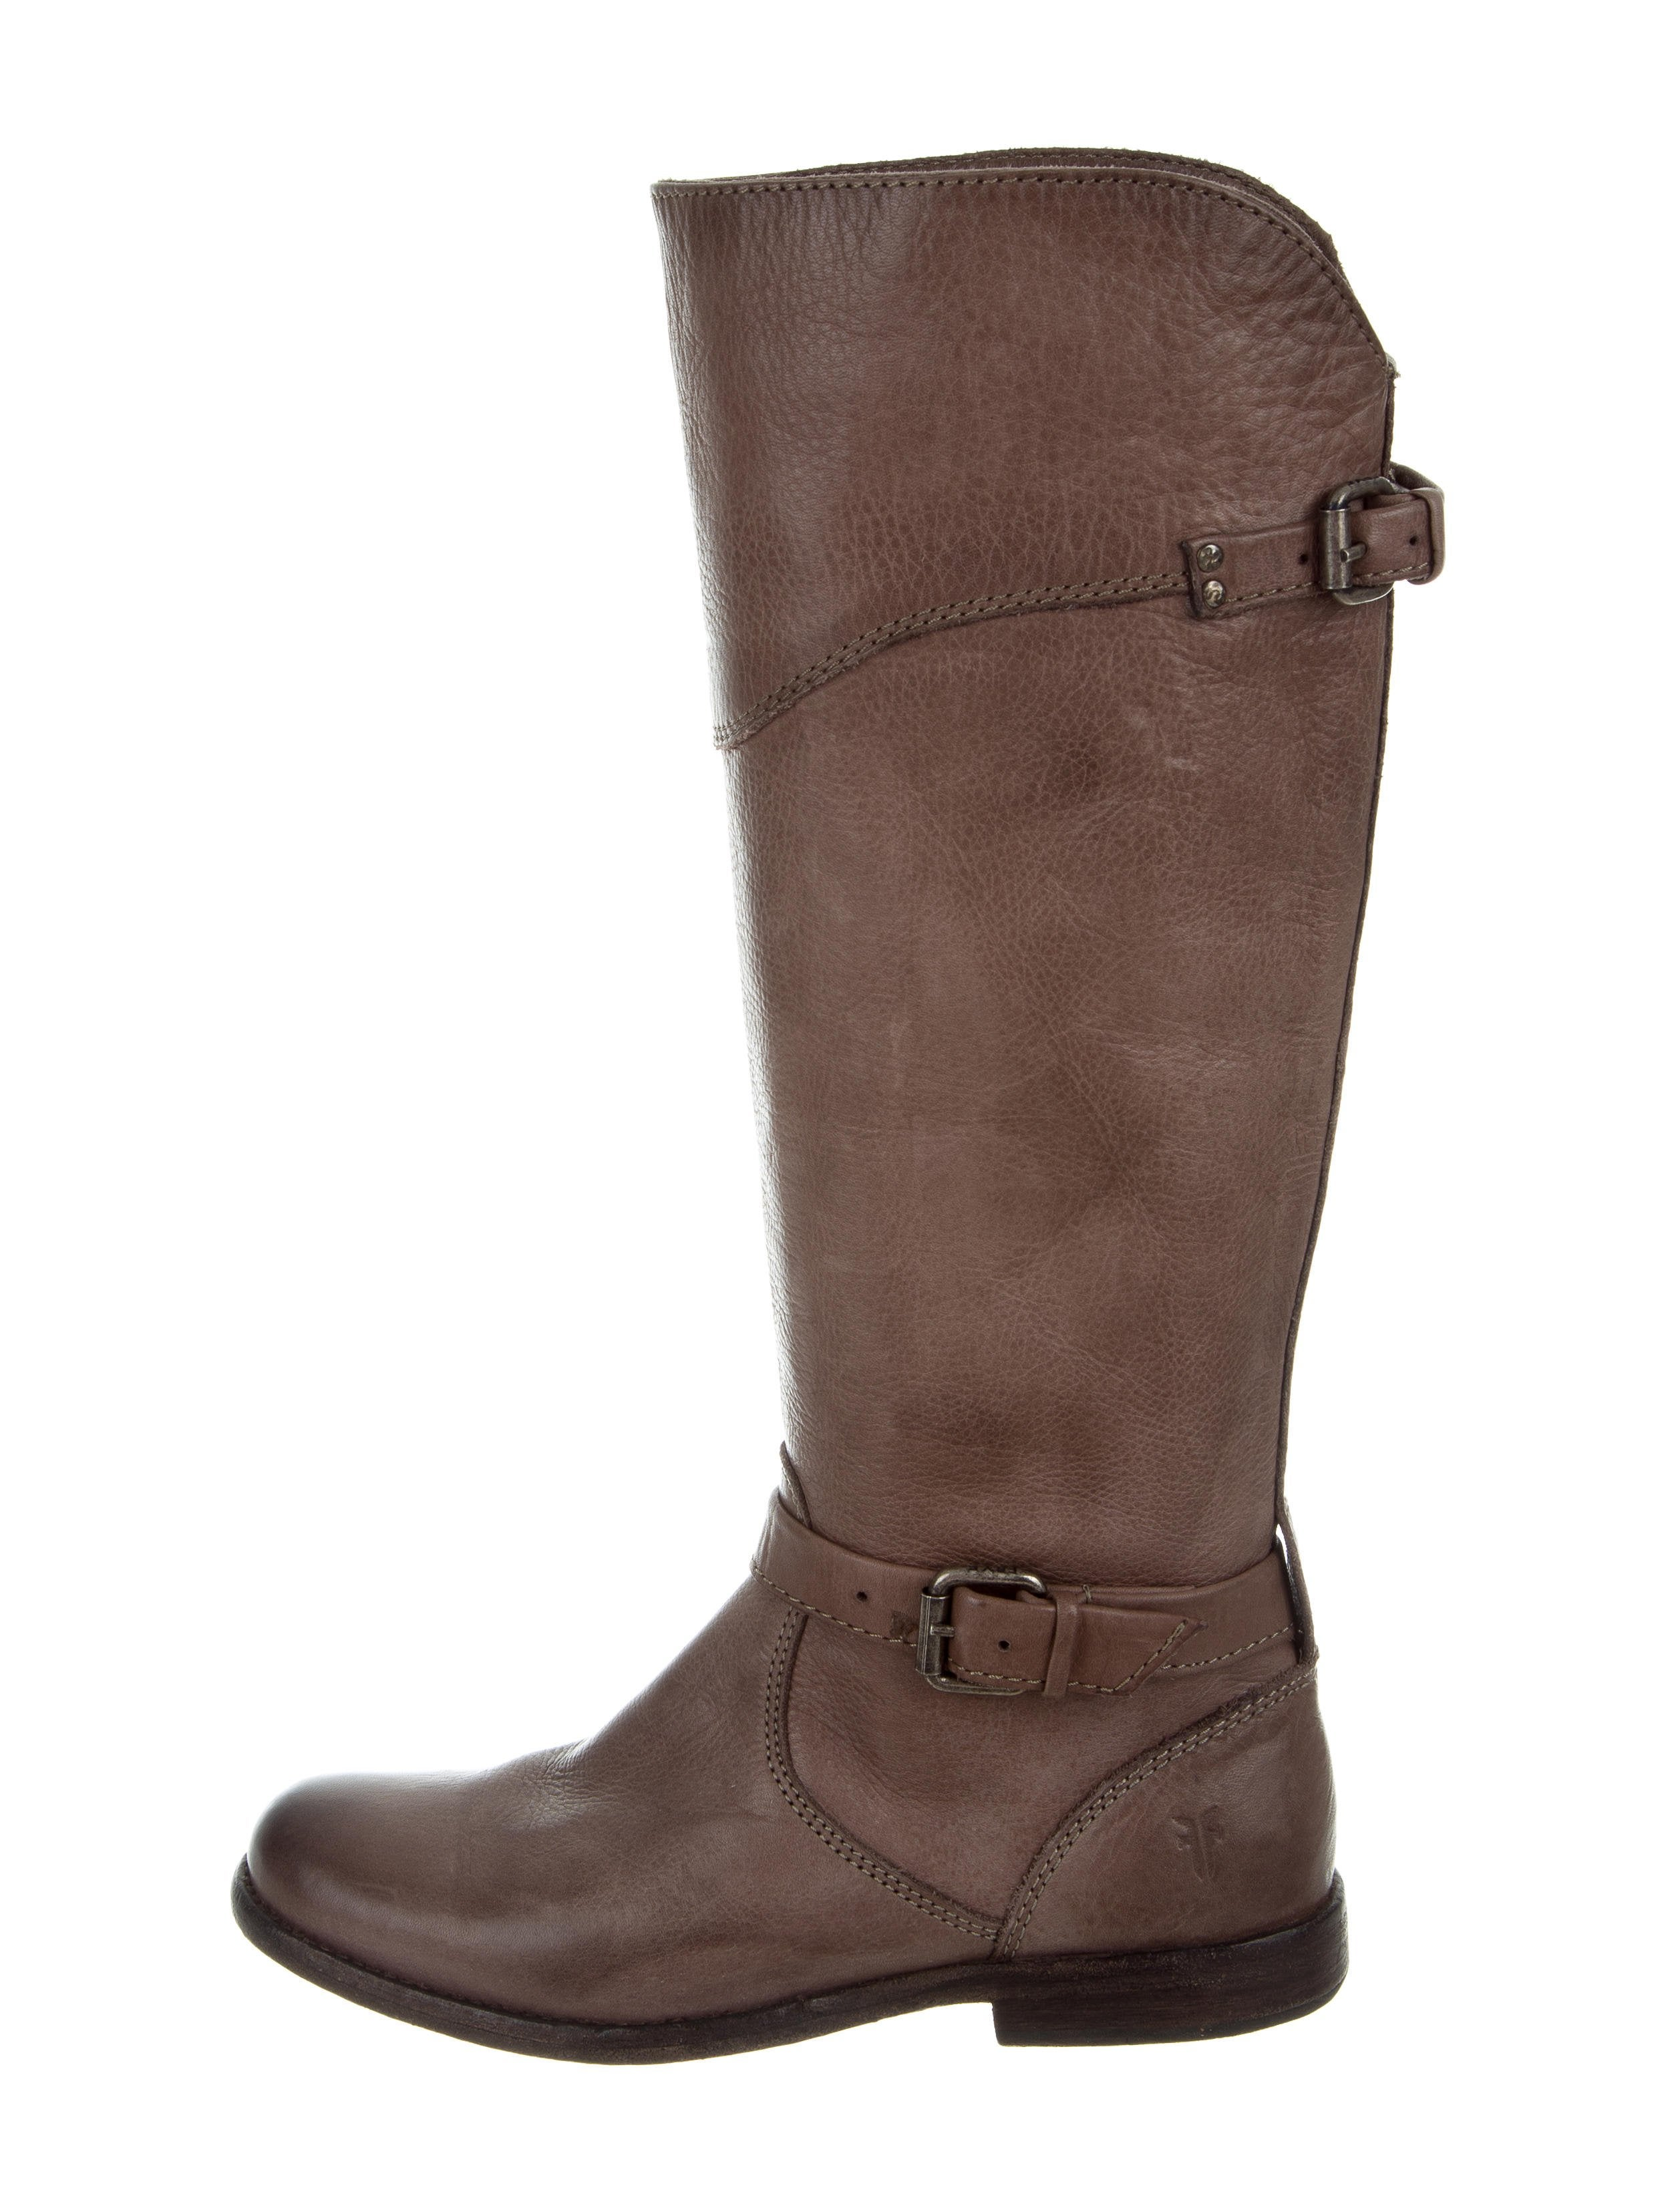 Frye Buckle-Accented Knee-High Boots great deals online u0KXnYLbvd